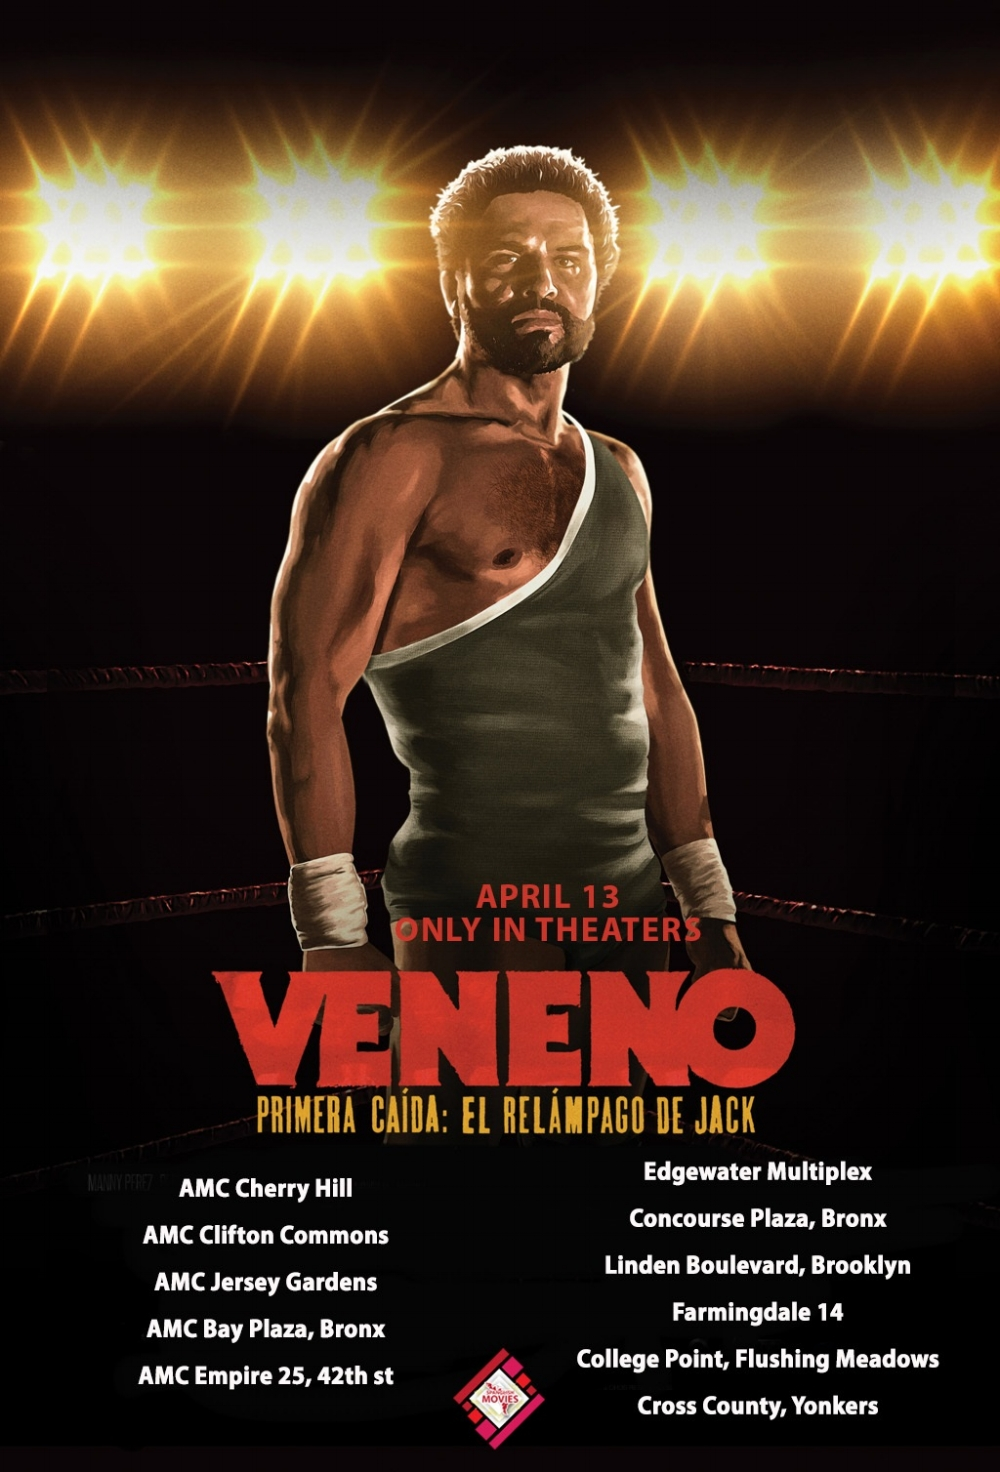 VENENO POSTERS WITH THEATRES.jpg